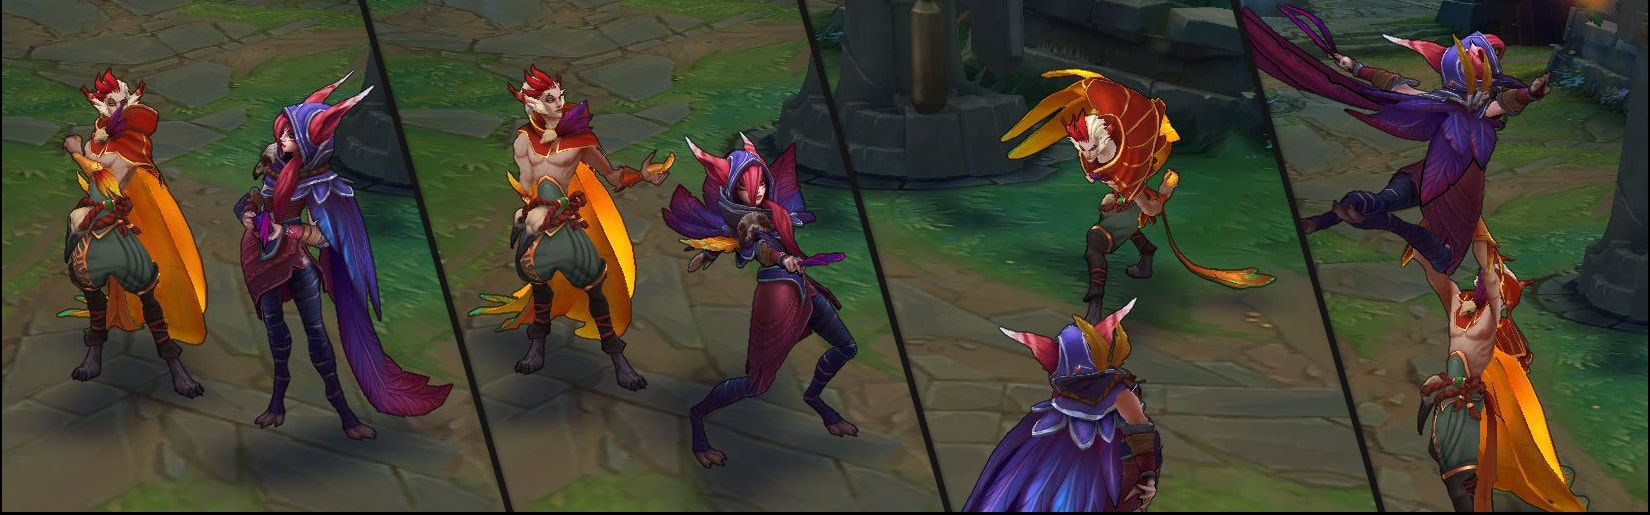 From left to right: Both are idling, Xayah starts her solo dance, Rakan opts into the dance, and they perform their synchronized dance.